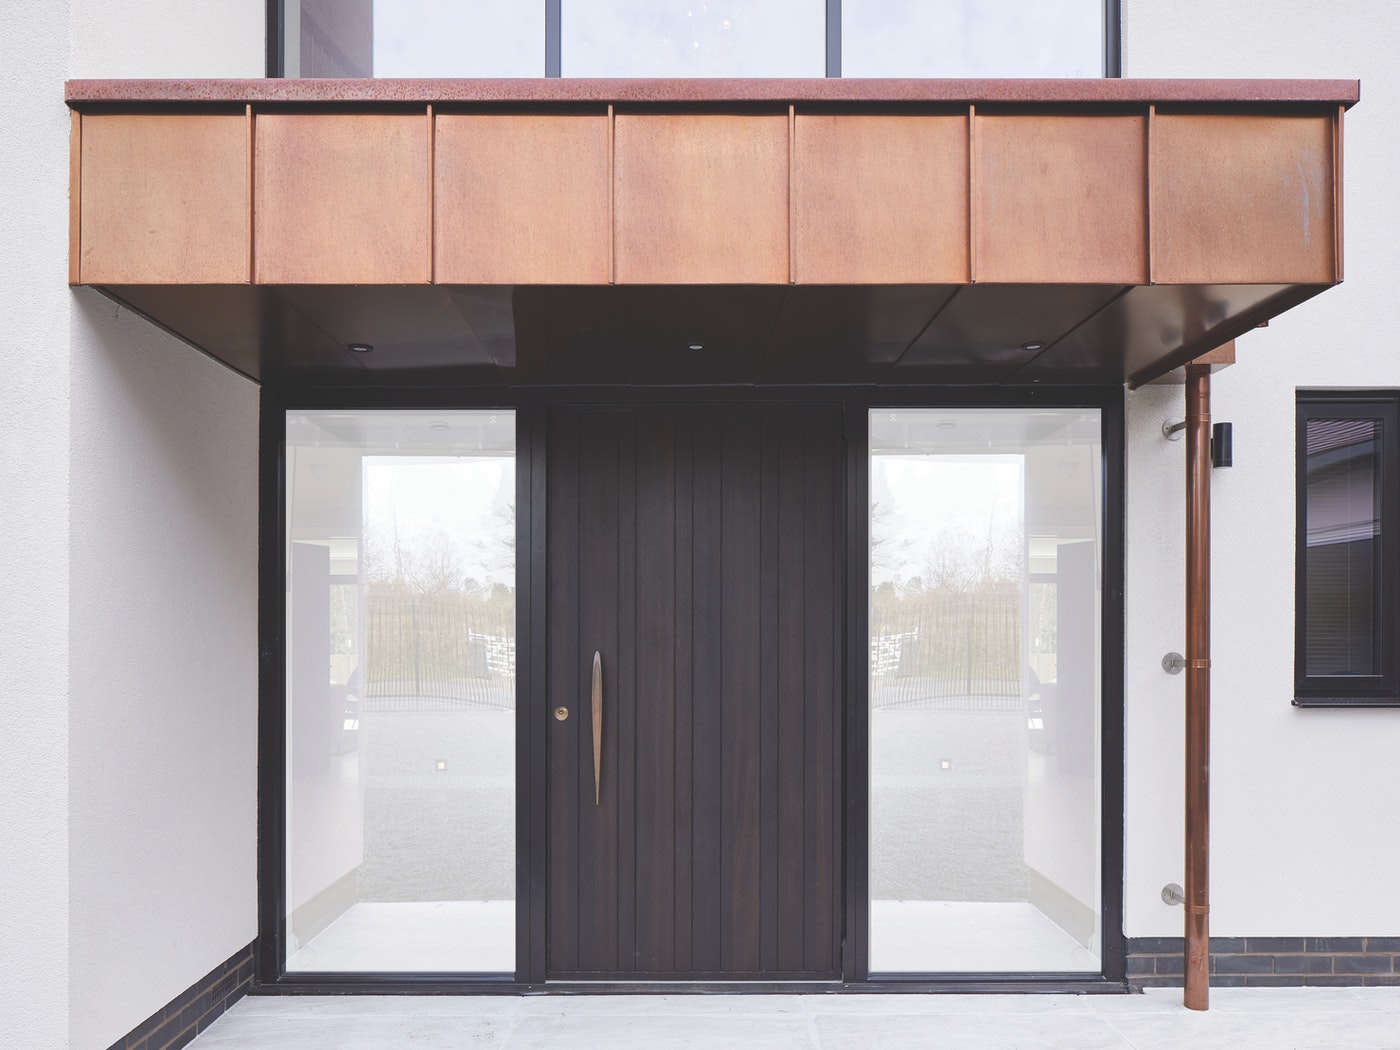 Rondo V in Fumed Oak with painted RAL side lites which work very well with the copper overhang/ entry detail